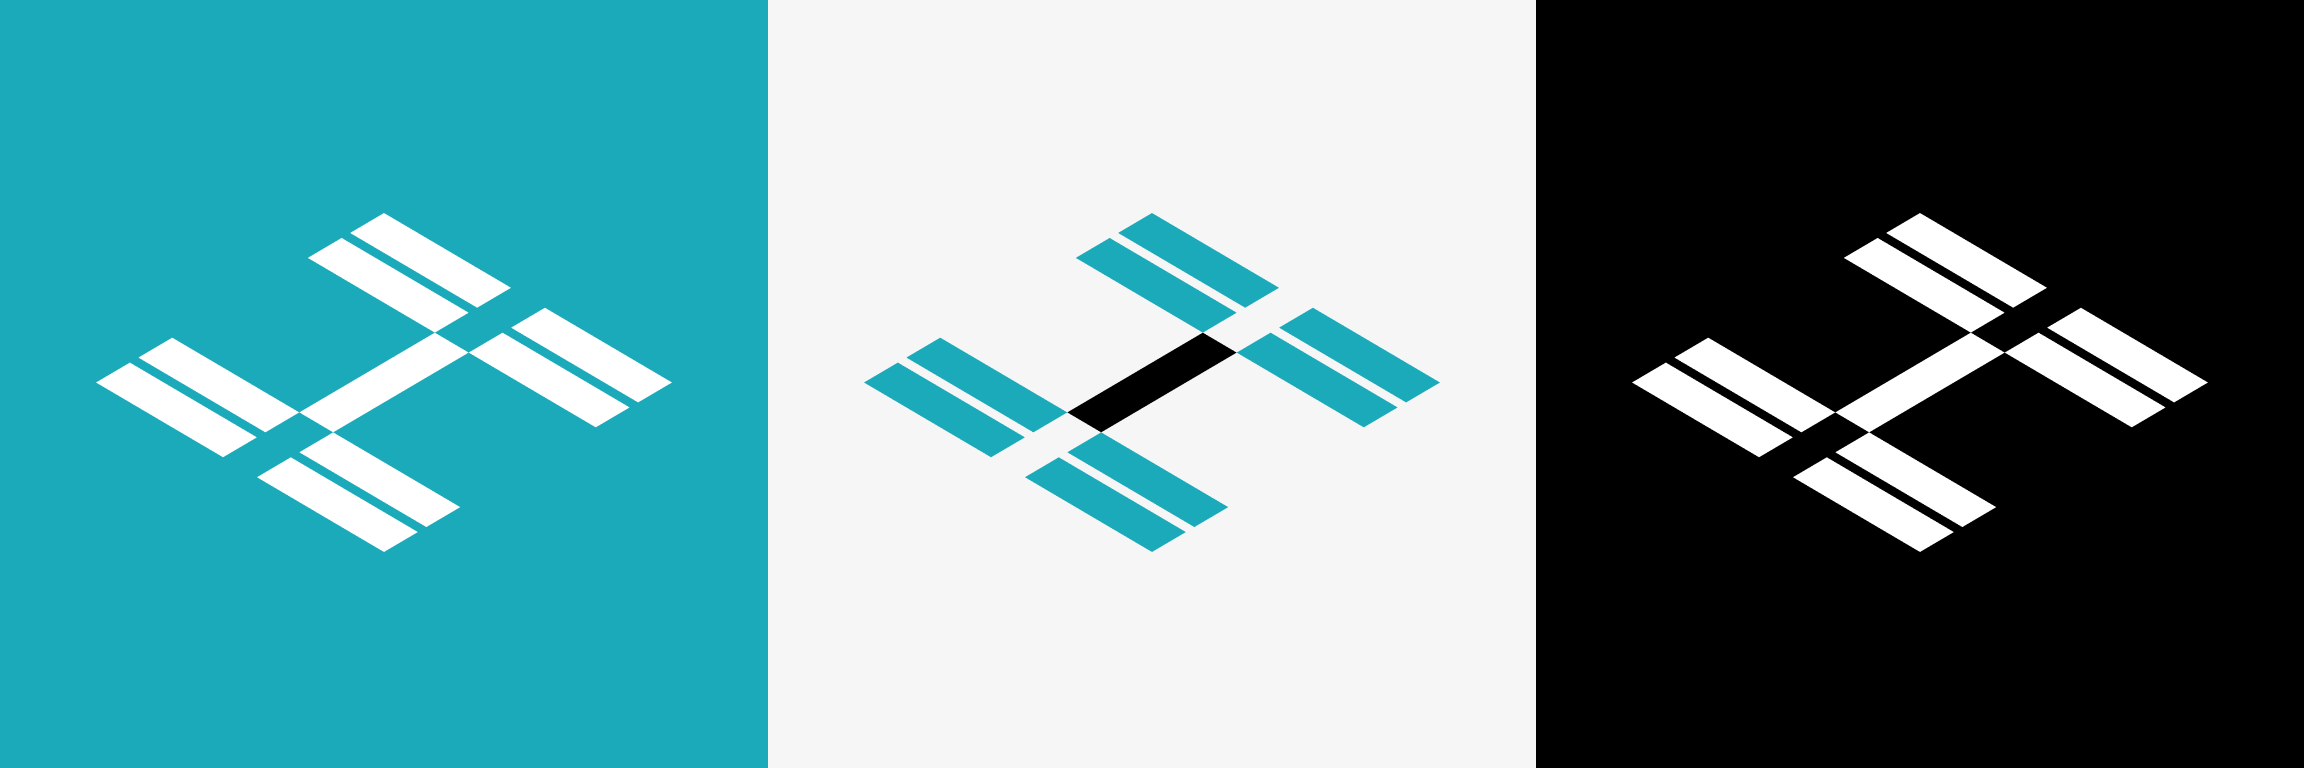 Icx station accelerator